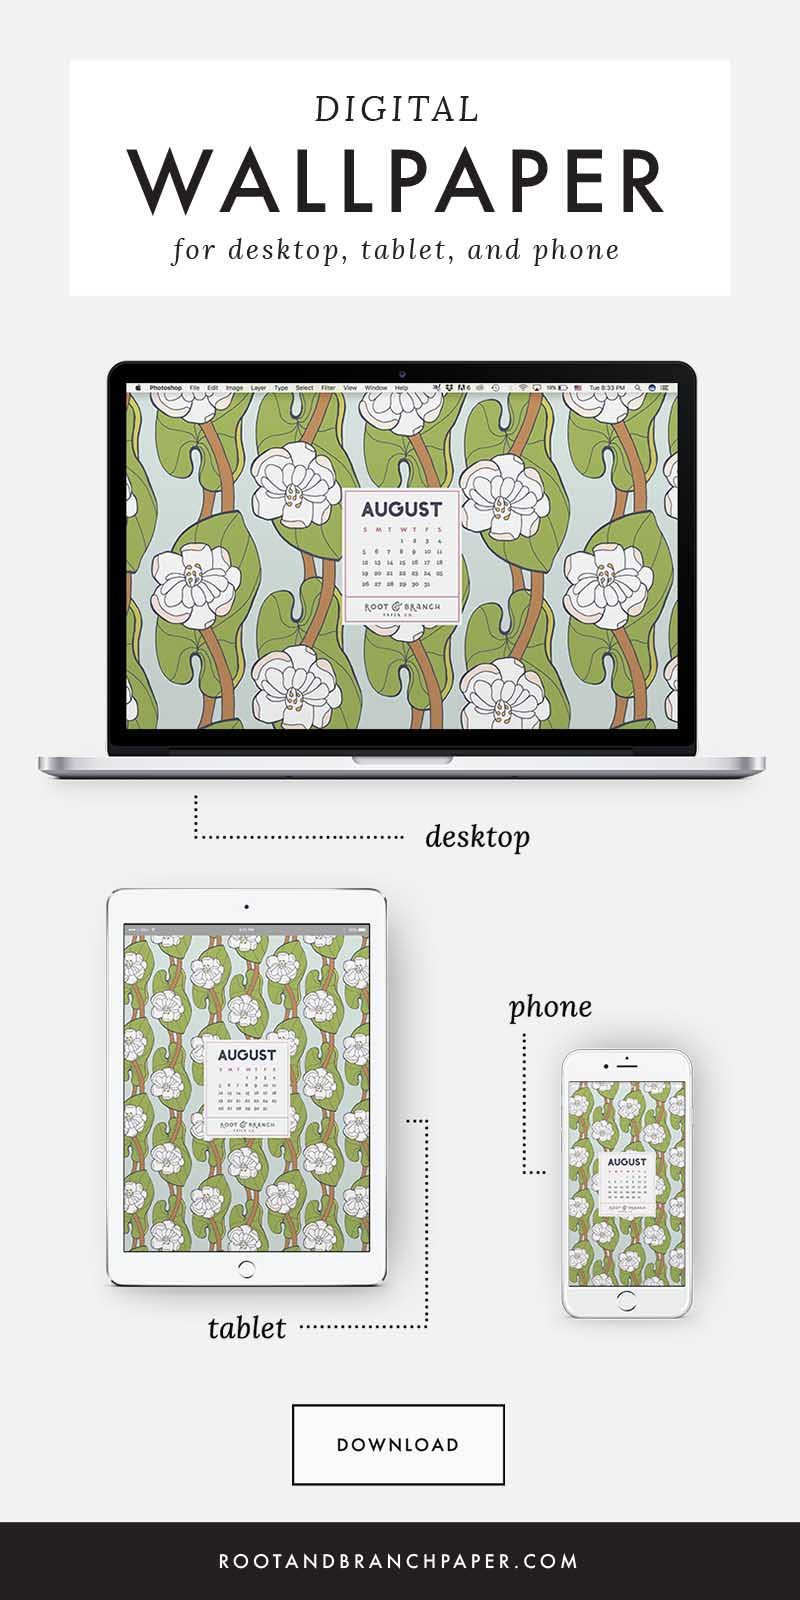 August 2018 Desktop Wallpaper, Free Floral August 2018 Monthly Calendar Desktop Background | Download Floral Illustrated Digital Wallpapers for Desktop, Tablet, + Phone | Root & Branch Paper Co.